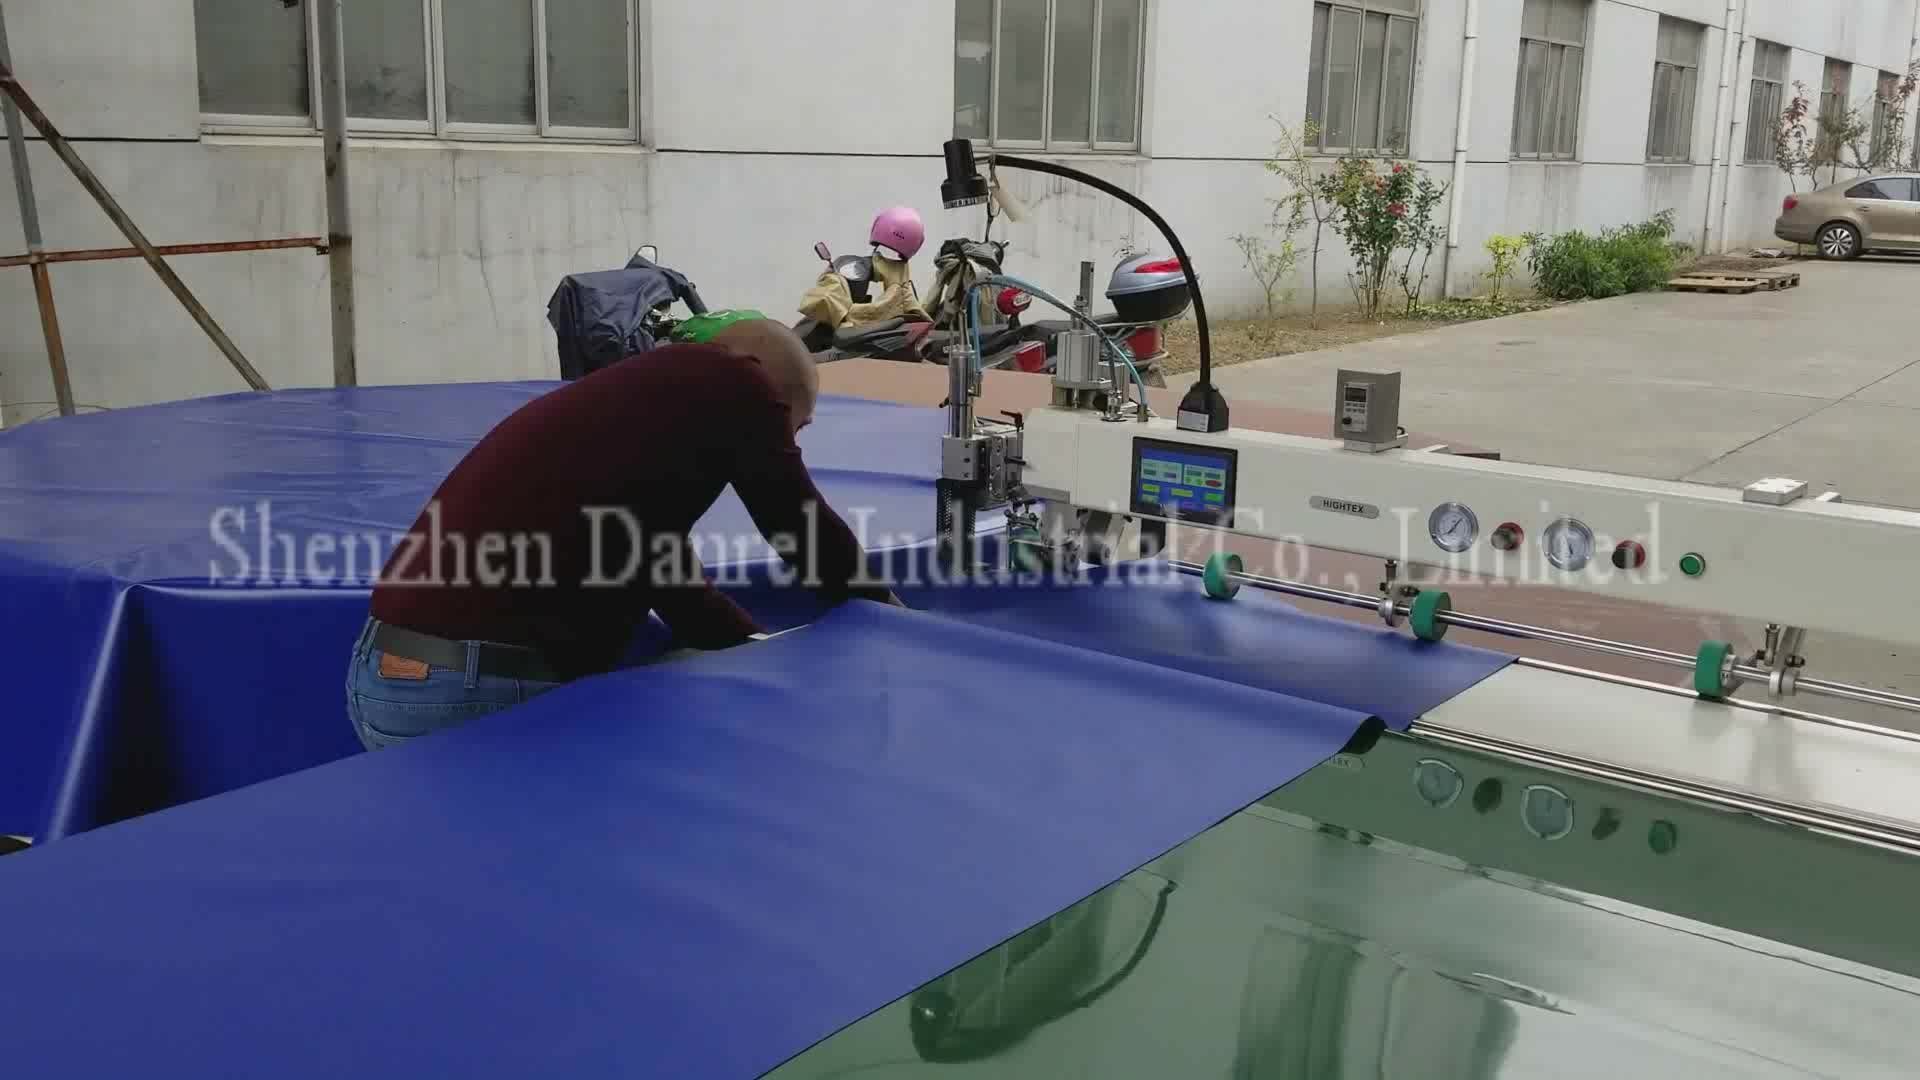 Shenzhen DANREL Hot Air and Wedge PVC Vinyl Floor Welder Seam Sealer for Sale with Automatic Fabric Puller